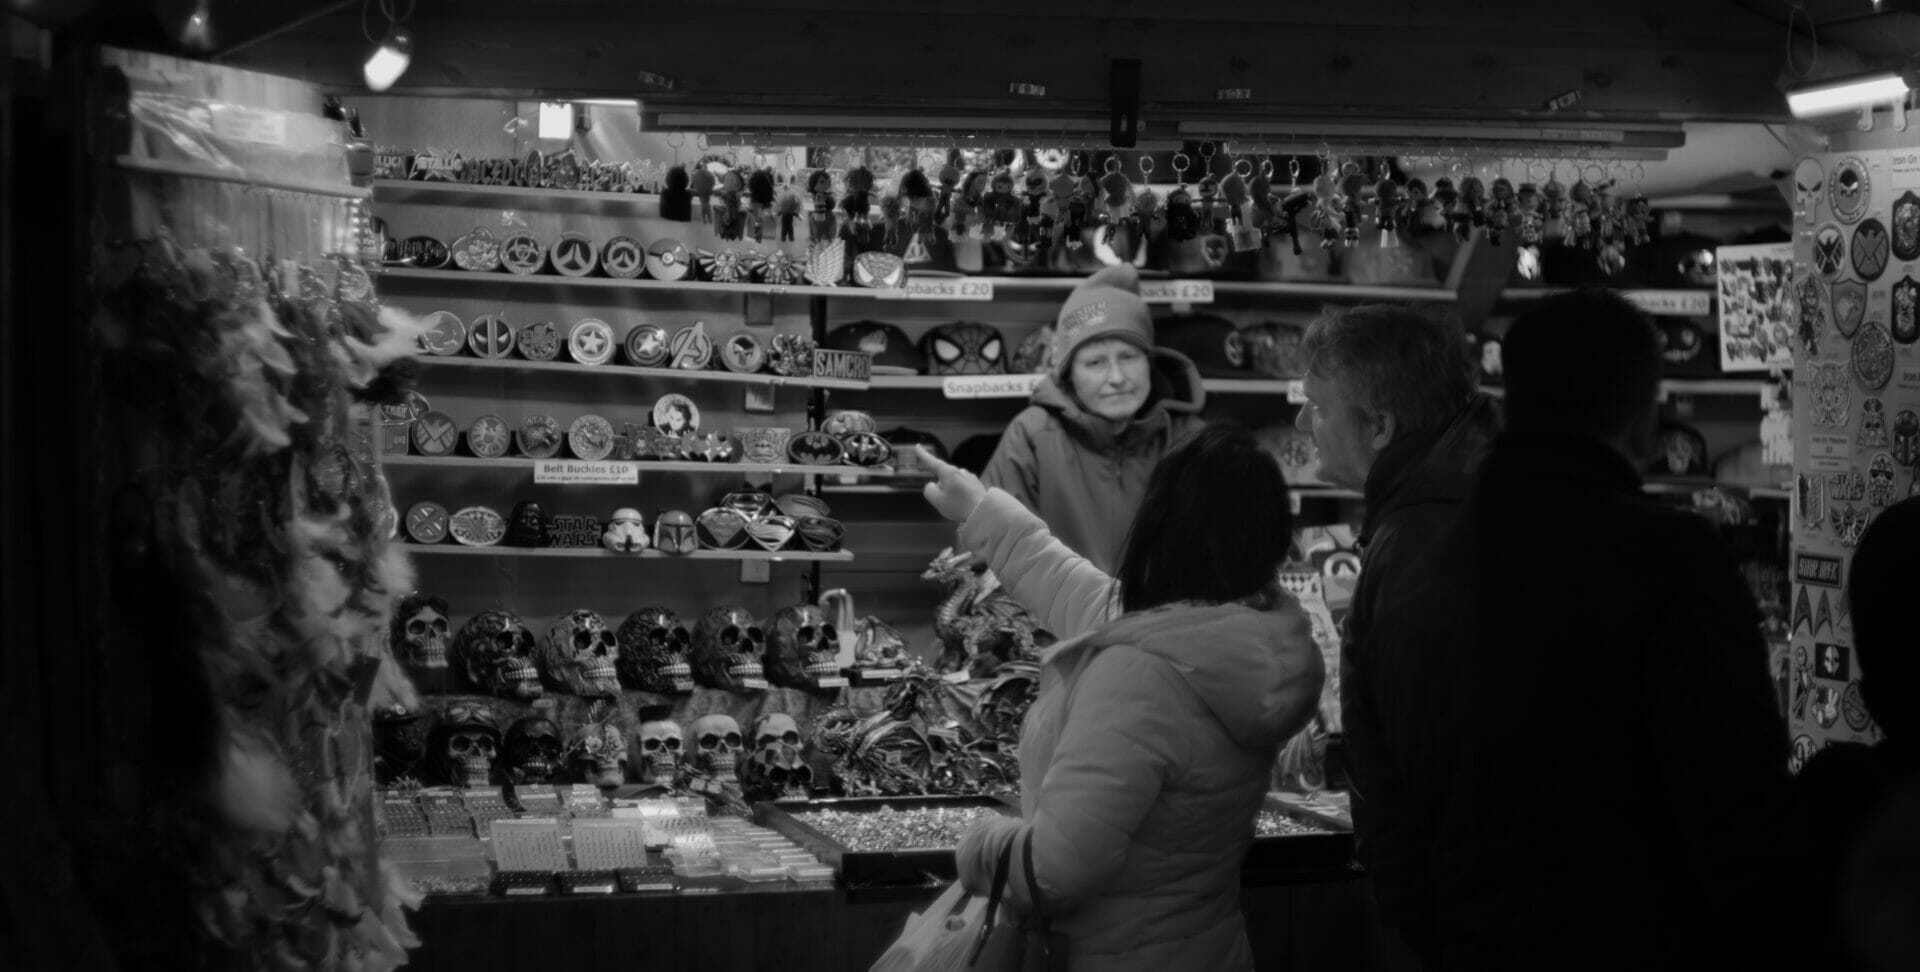 Black and white photo of person shopping at the Chester Christmas Markets